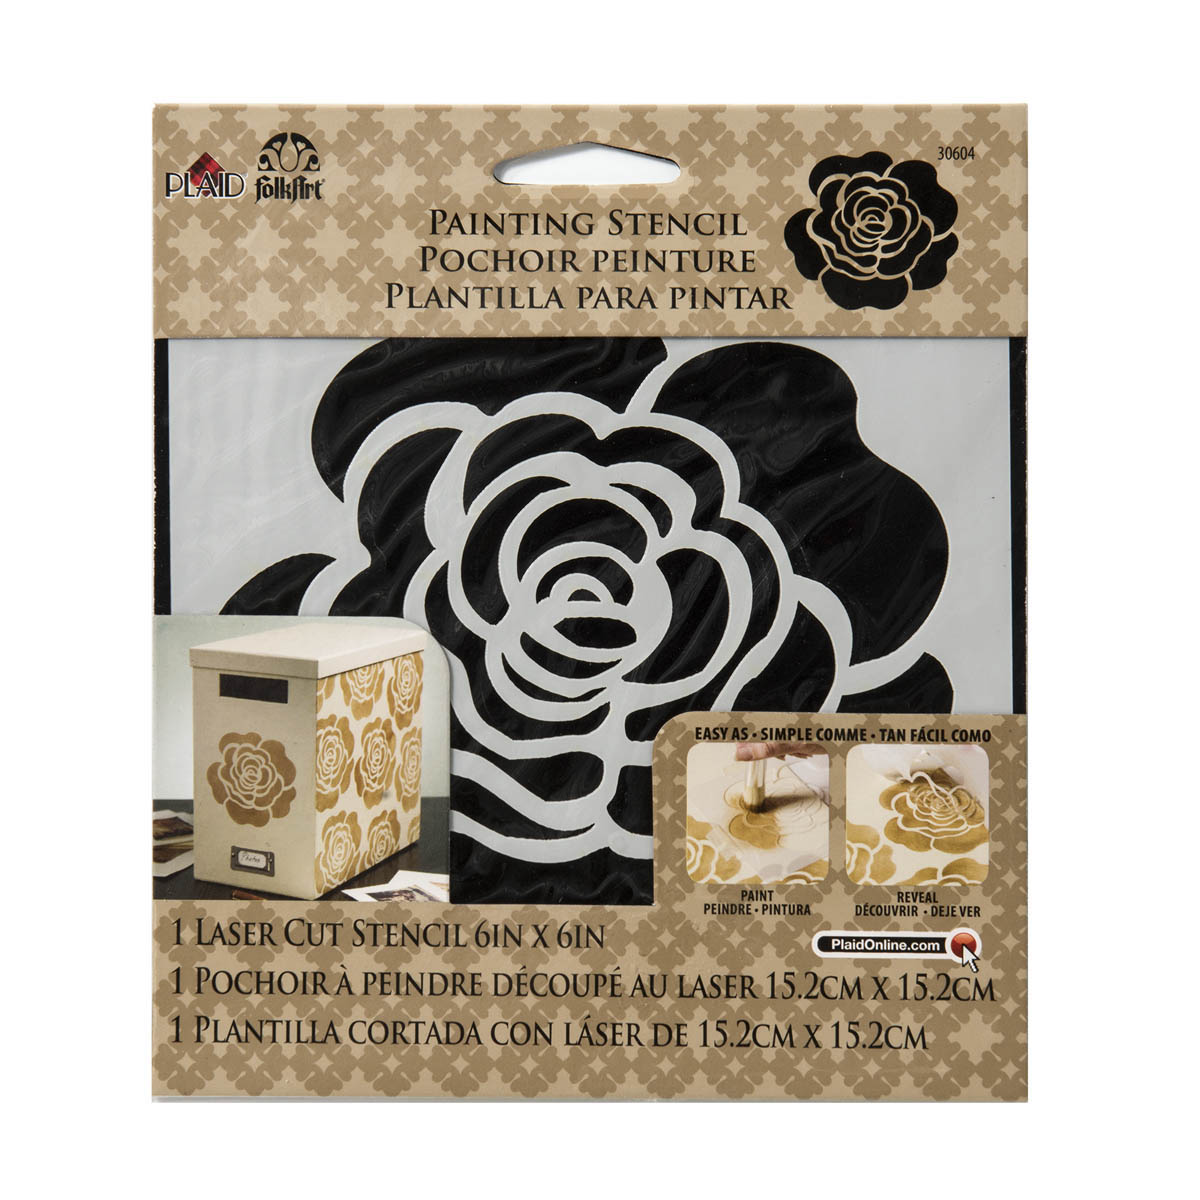 FolkArt ® Painting Stencils - Small - Single Rose - 30604